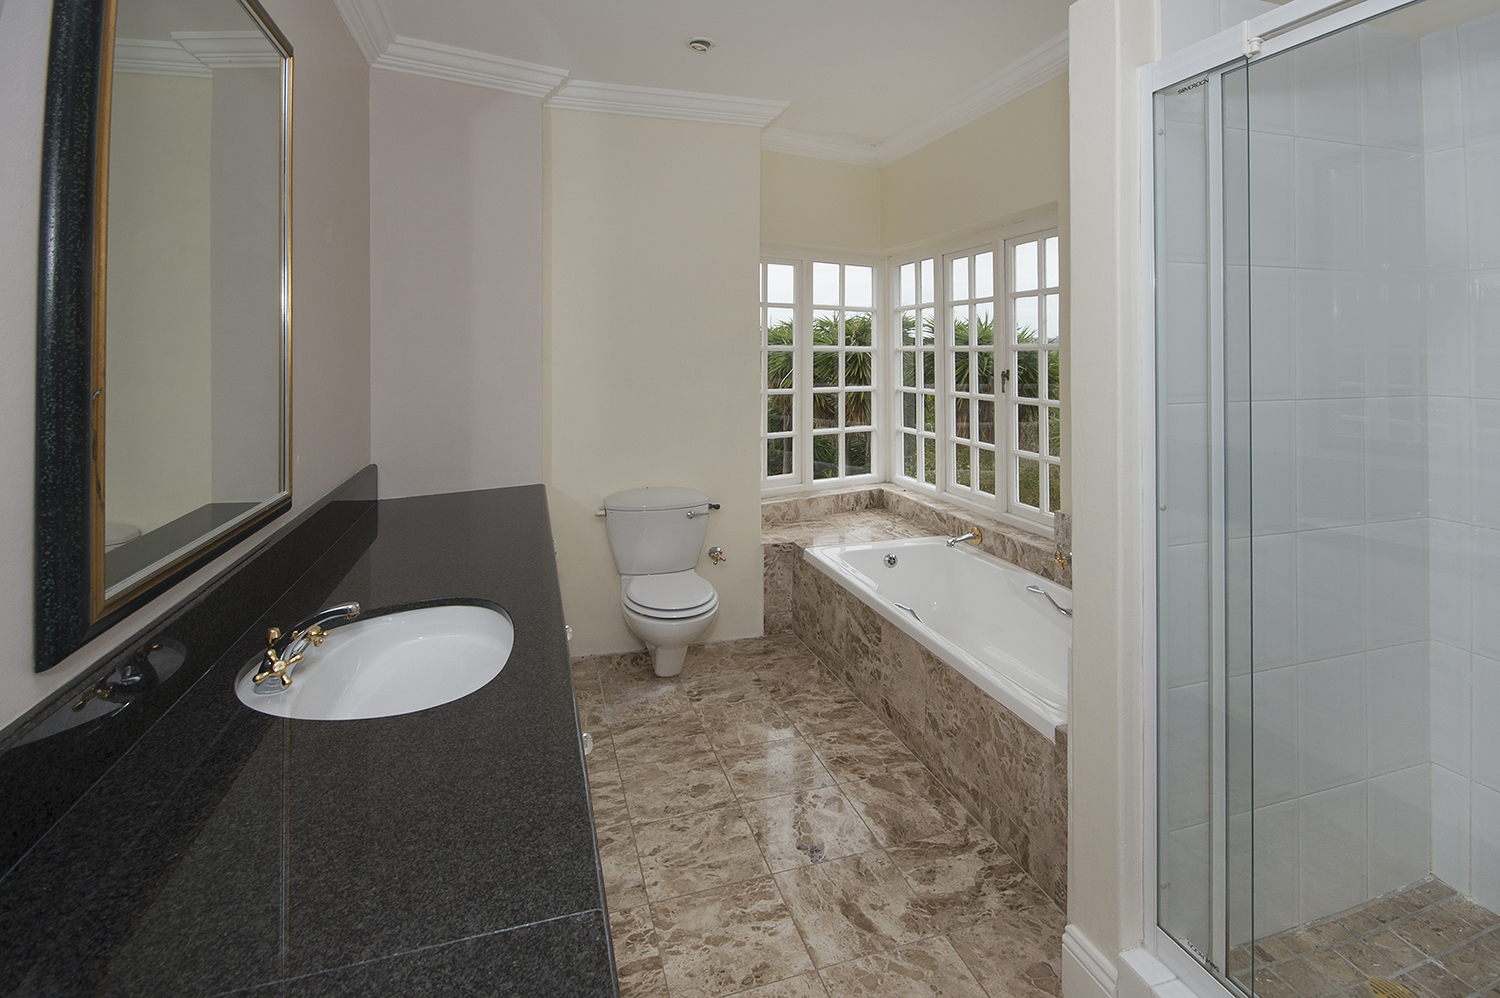 4 Bedroom House for sale in Mill Park ENT0024309 : photo#14